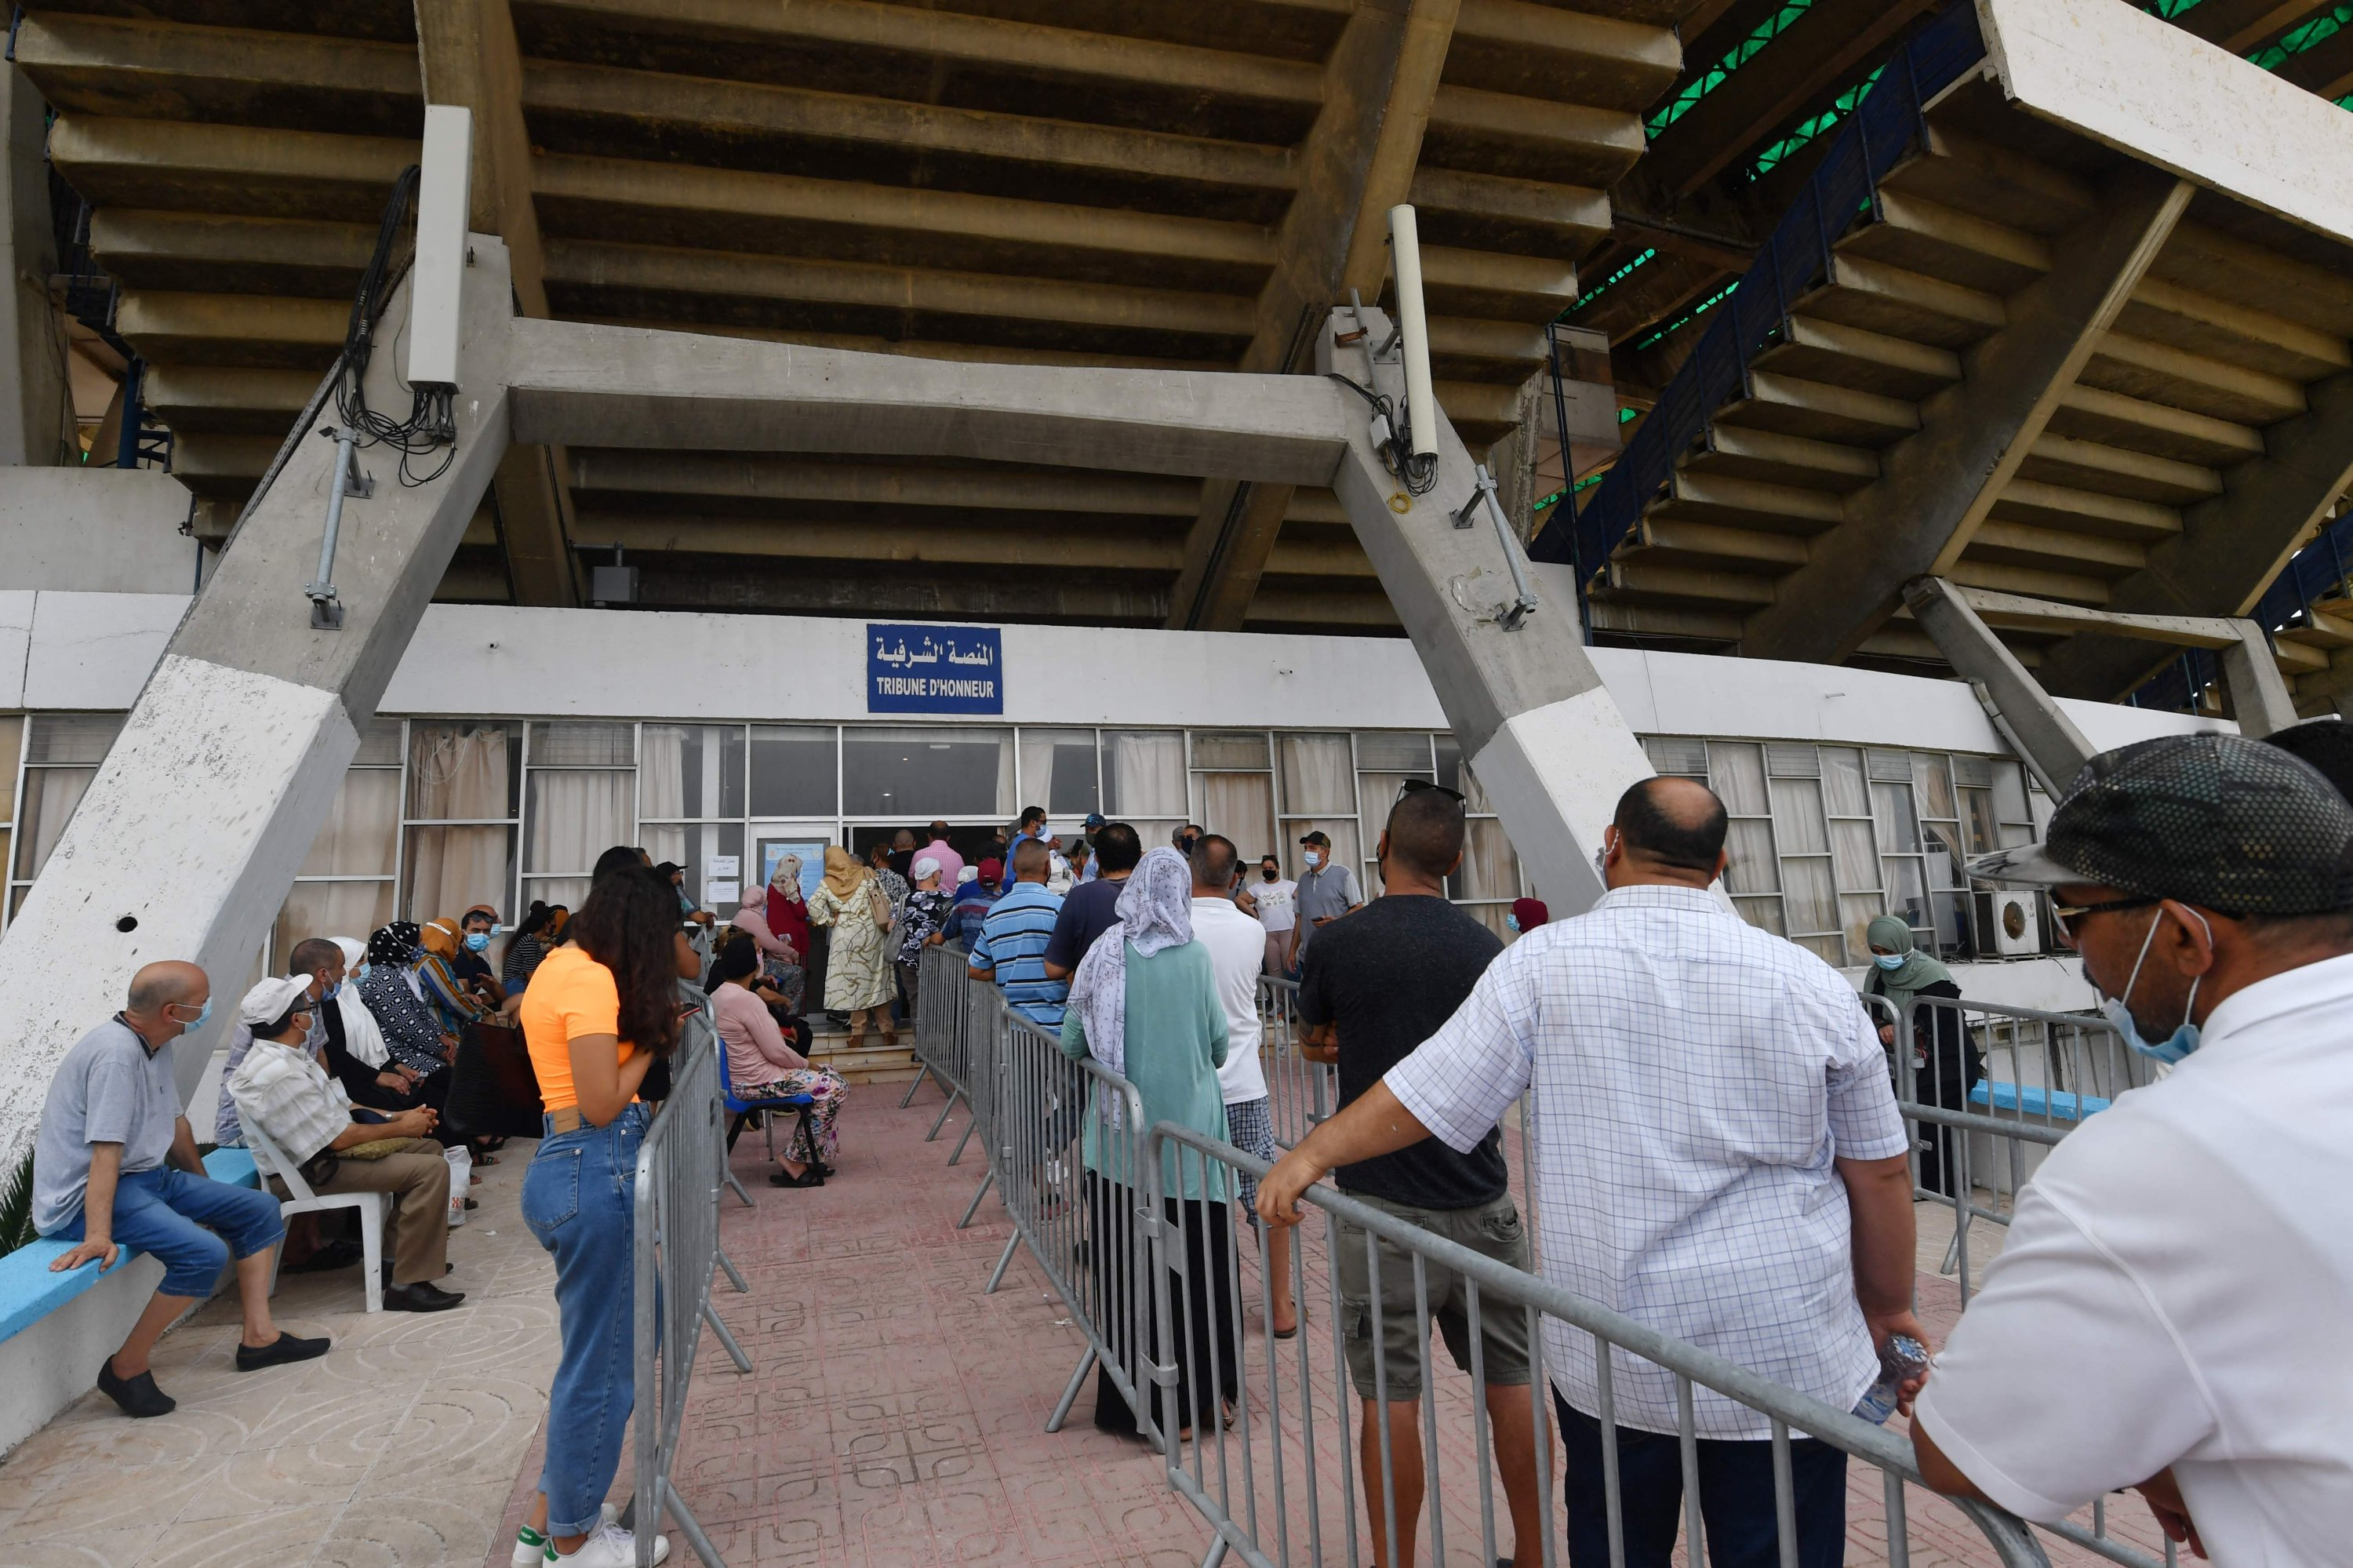 People queue to receives their coronavirus vaccines at El-Menzah Stadium which was turned into a vaccination centre in the Tunisian capital Tunis on August 3, 2021. (AFP Photo)